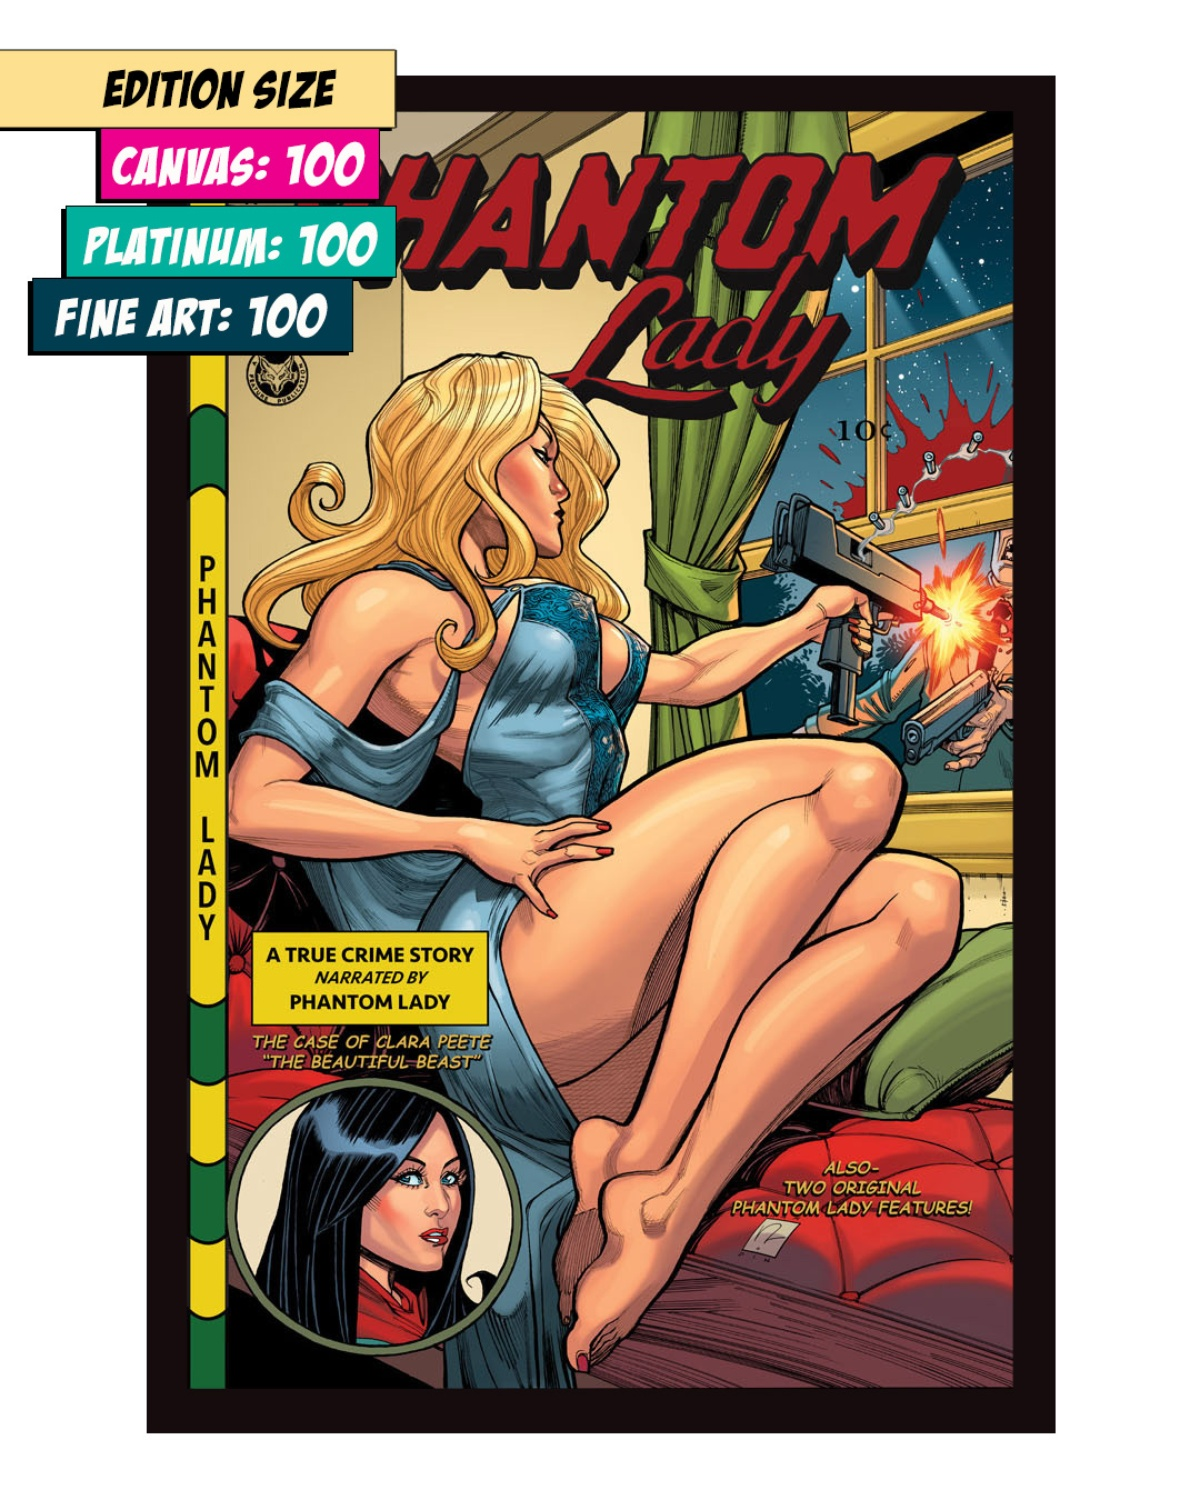 PHANTOM LADY 16: THE BEASTLY BOMBSHELL